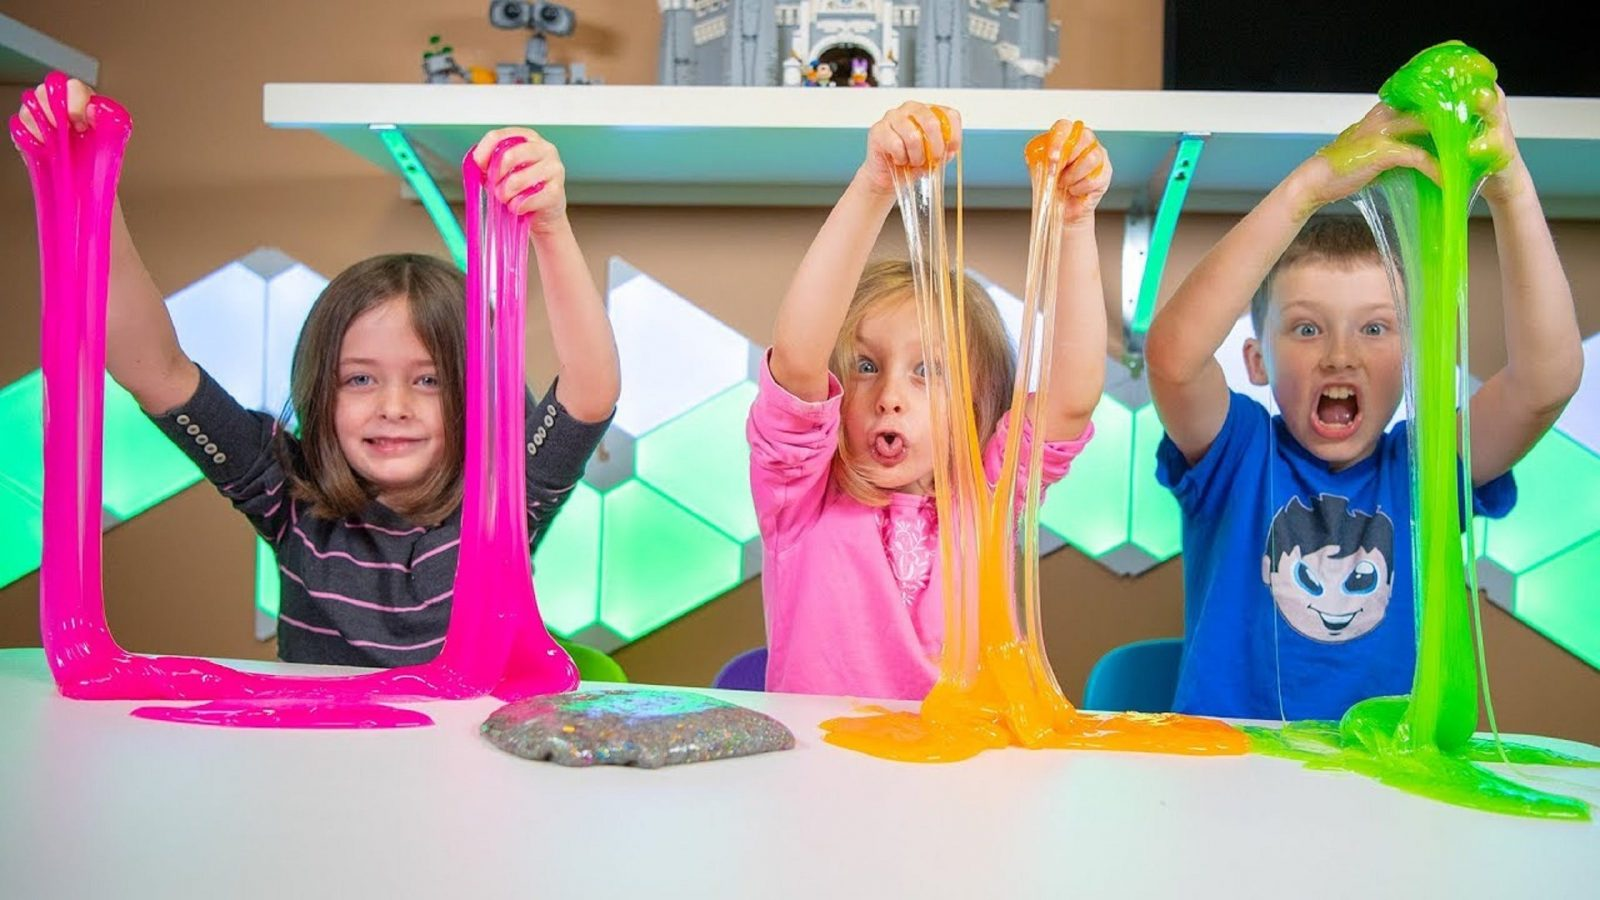 kids playing with slime